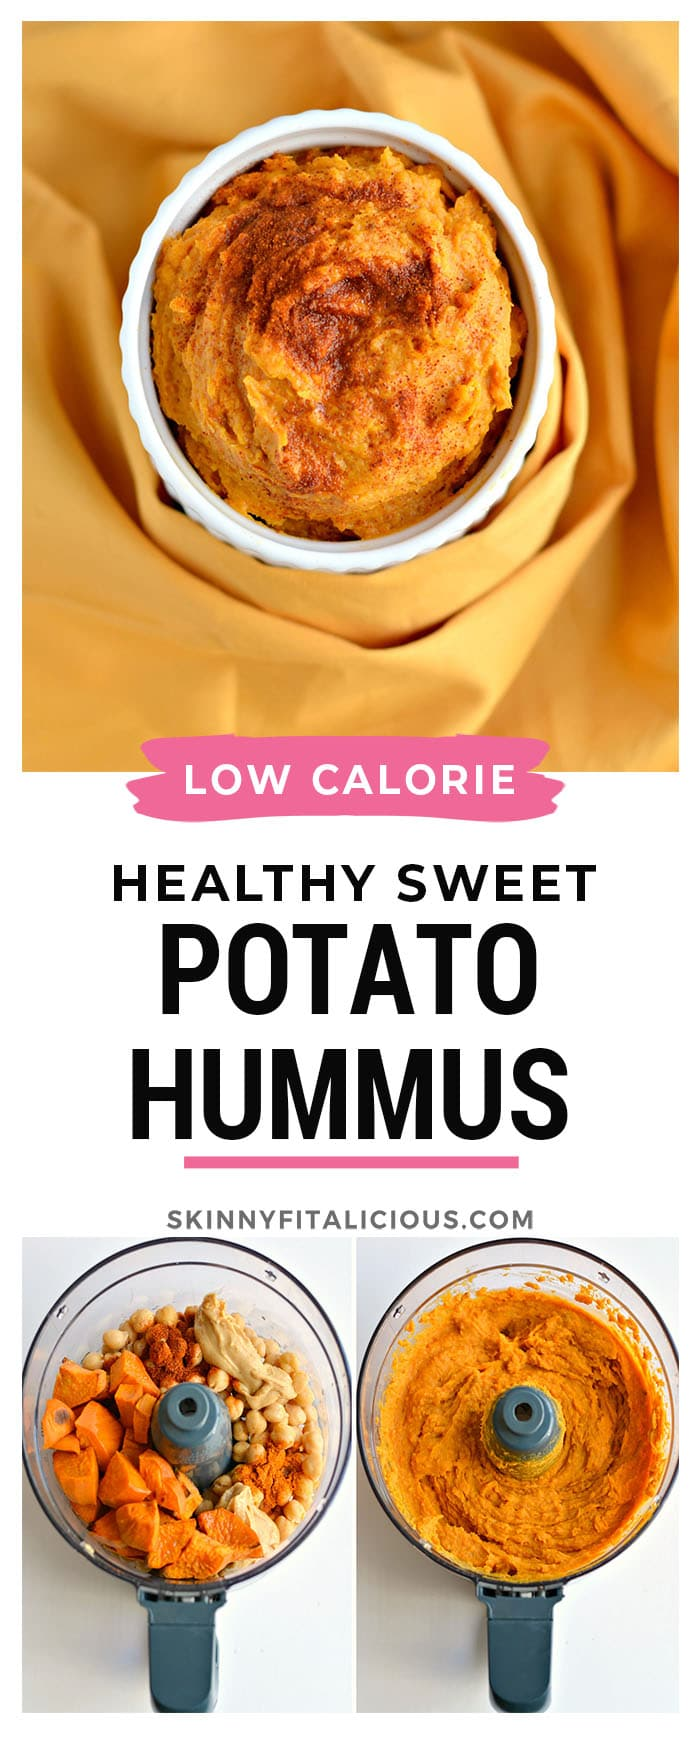 Sweet Potato Hummus made withpeanut butter and chickpeas and sprinkled withpaprika for a smoky flavor. This dip is great for spreading, dipping or to eat out of the jar. A delightful dip that makes health snacking easy!